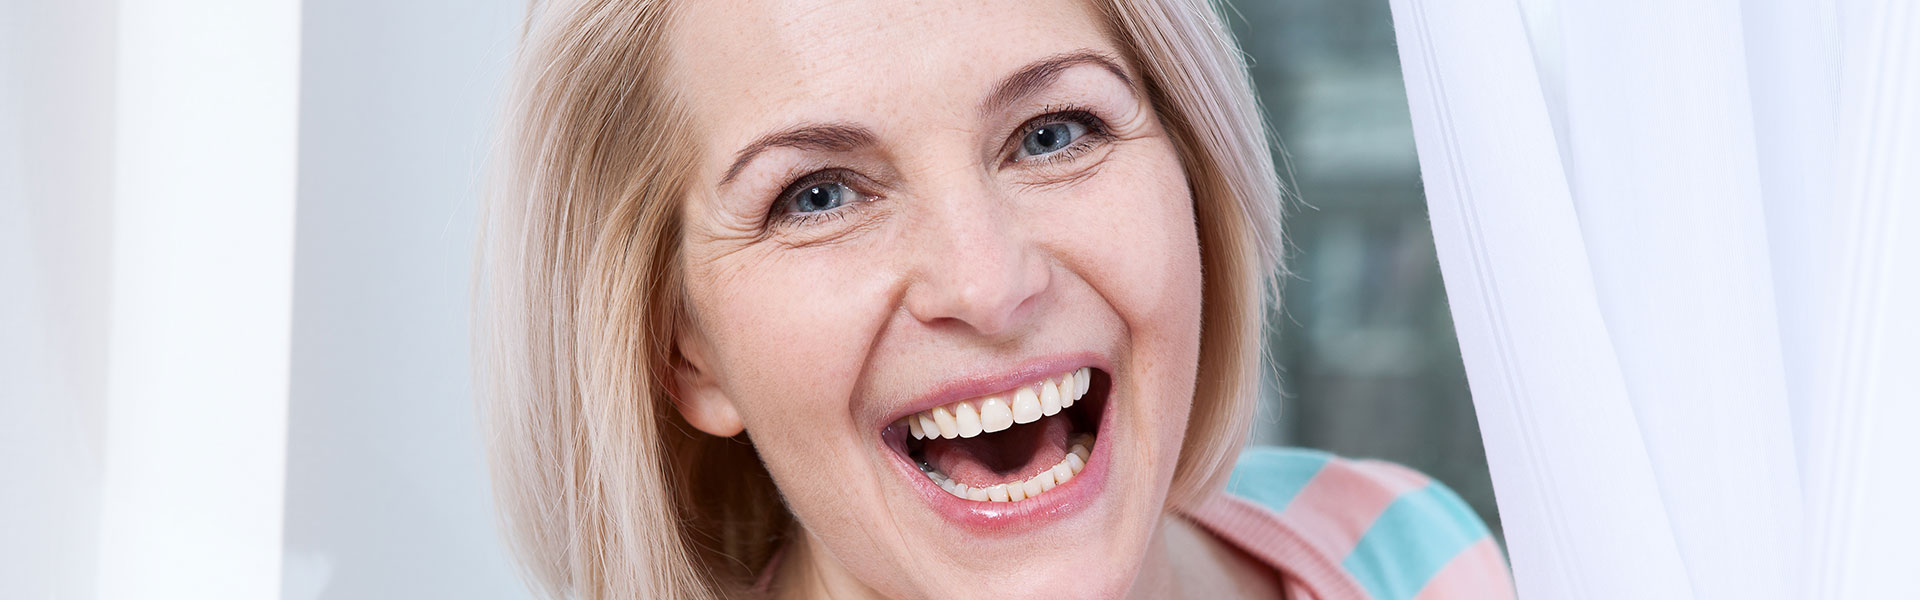 smiling broadly mature woman with perfect teeth